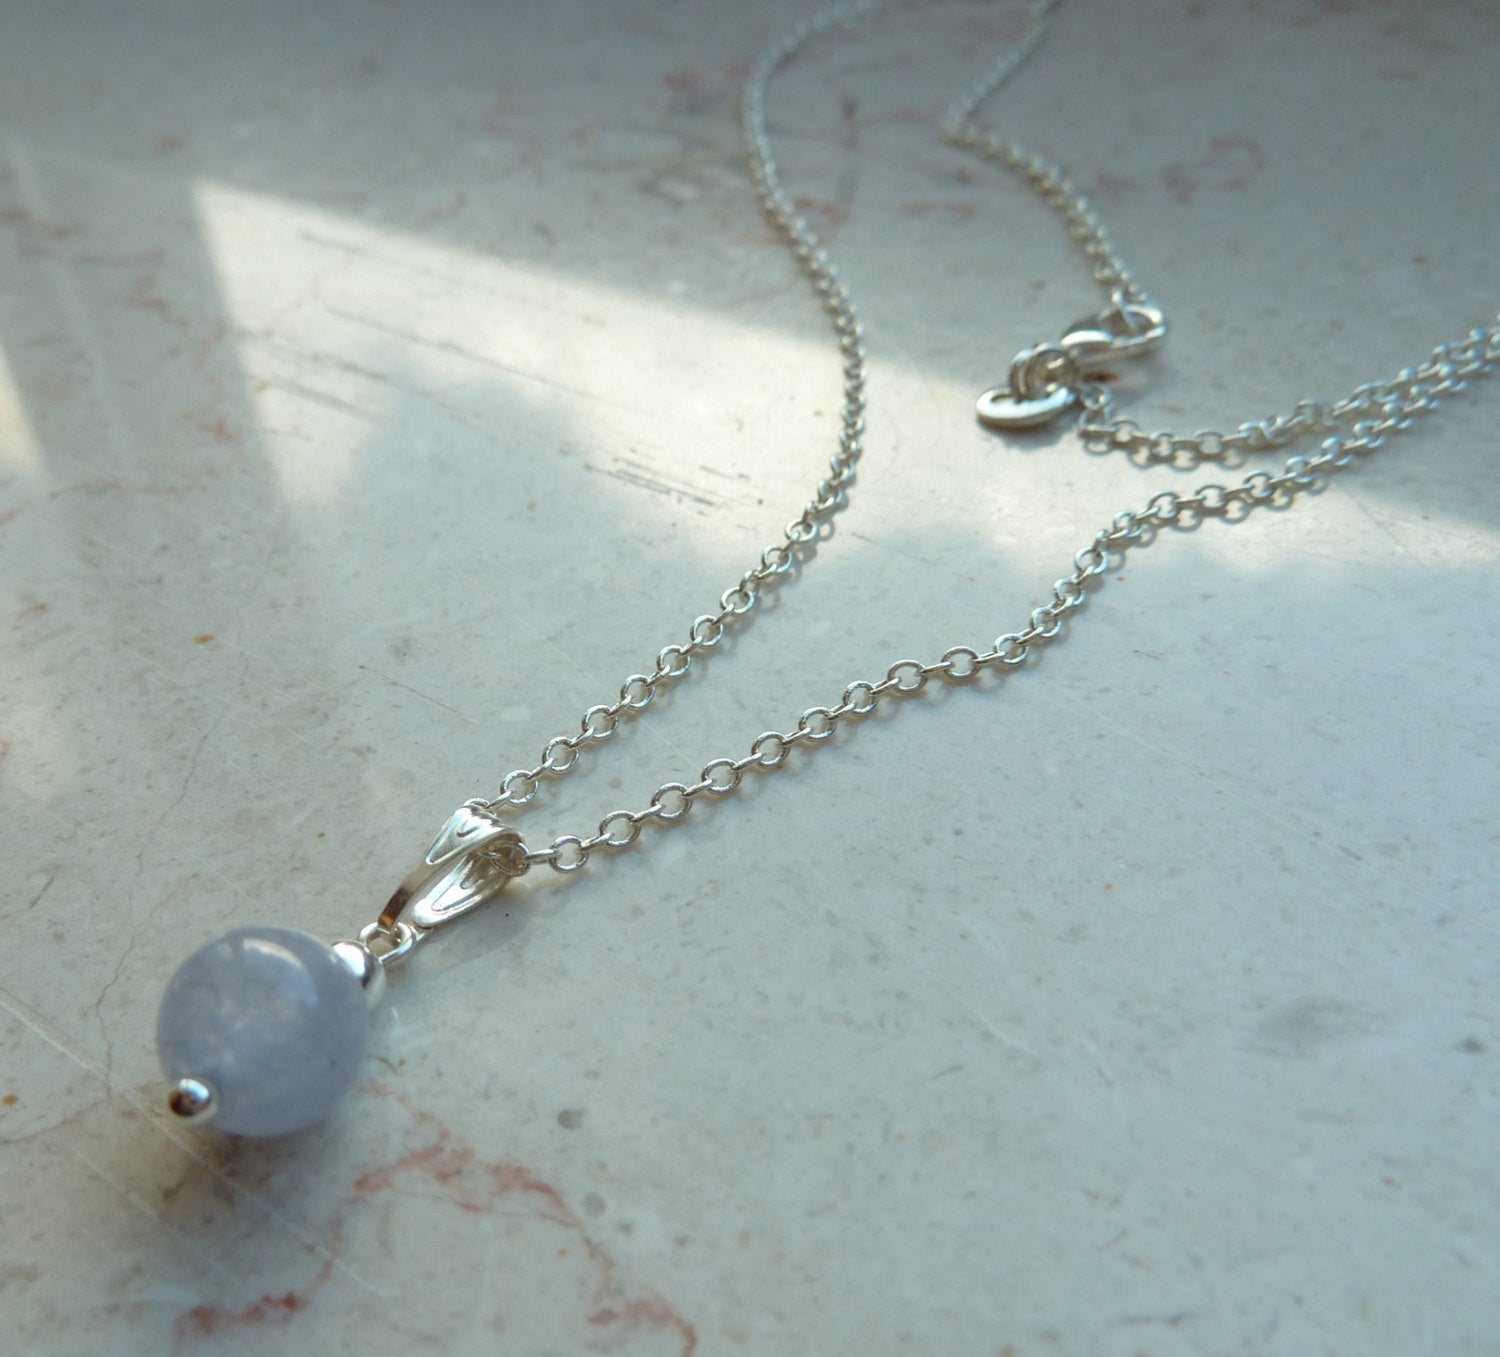 Womens Aquamarine necklace, silver stone necklace, tiny minimalist pendant necklace